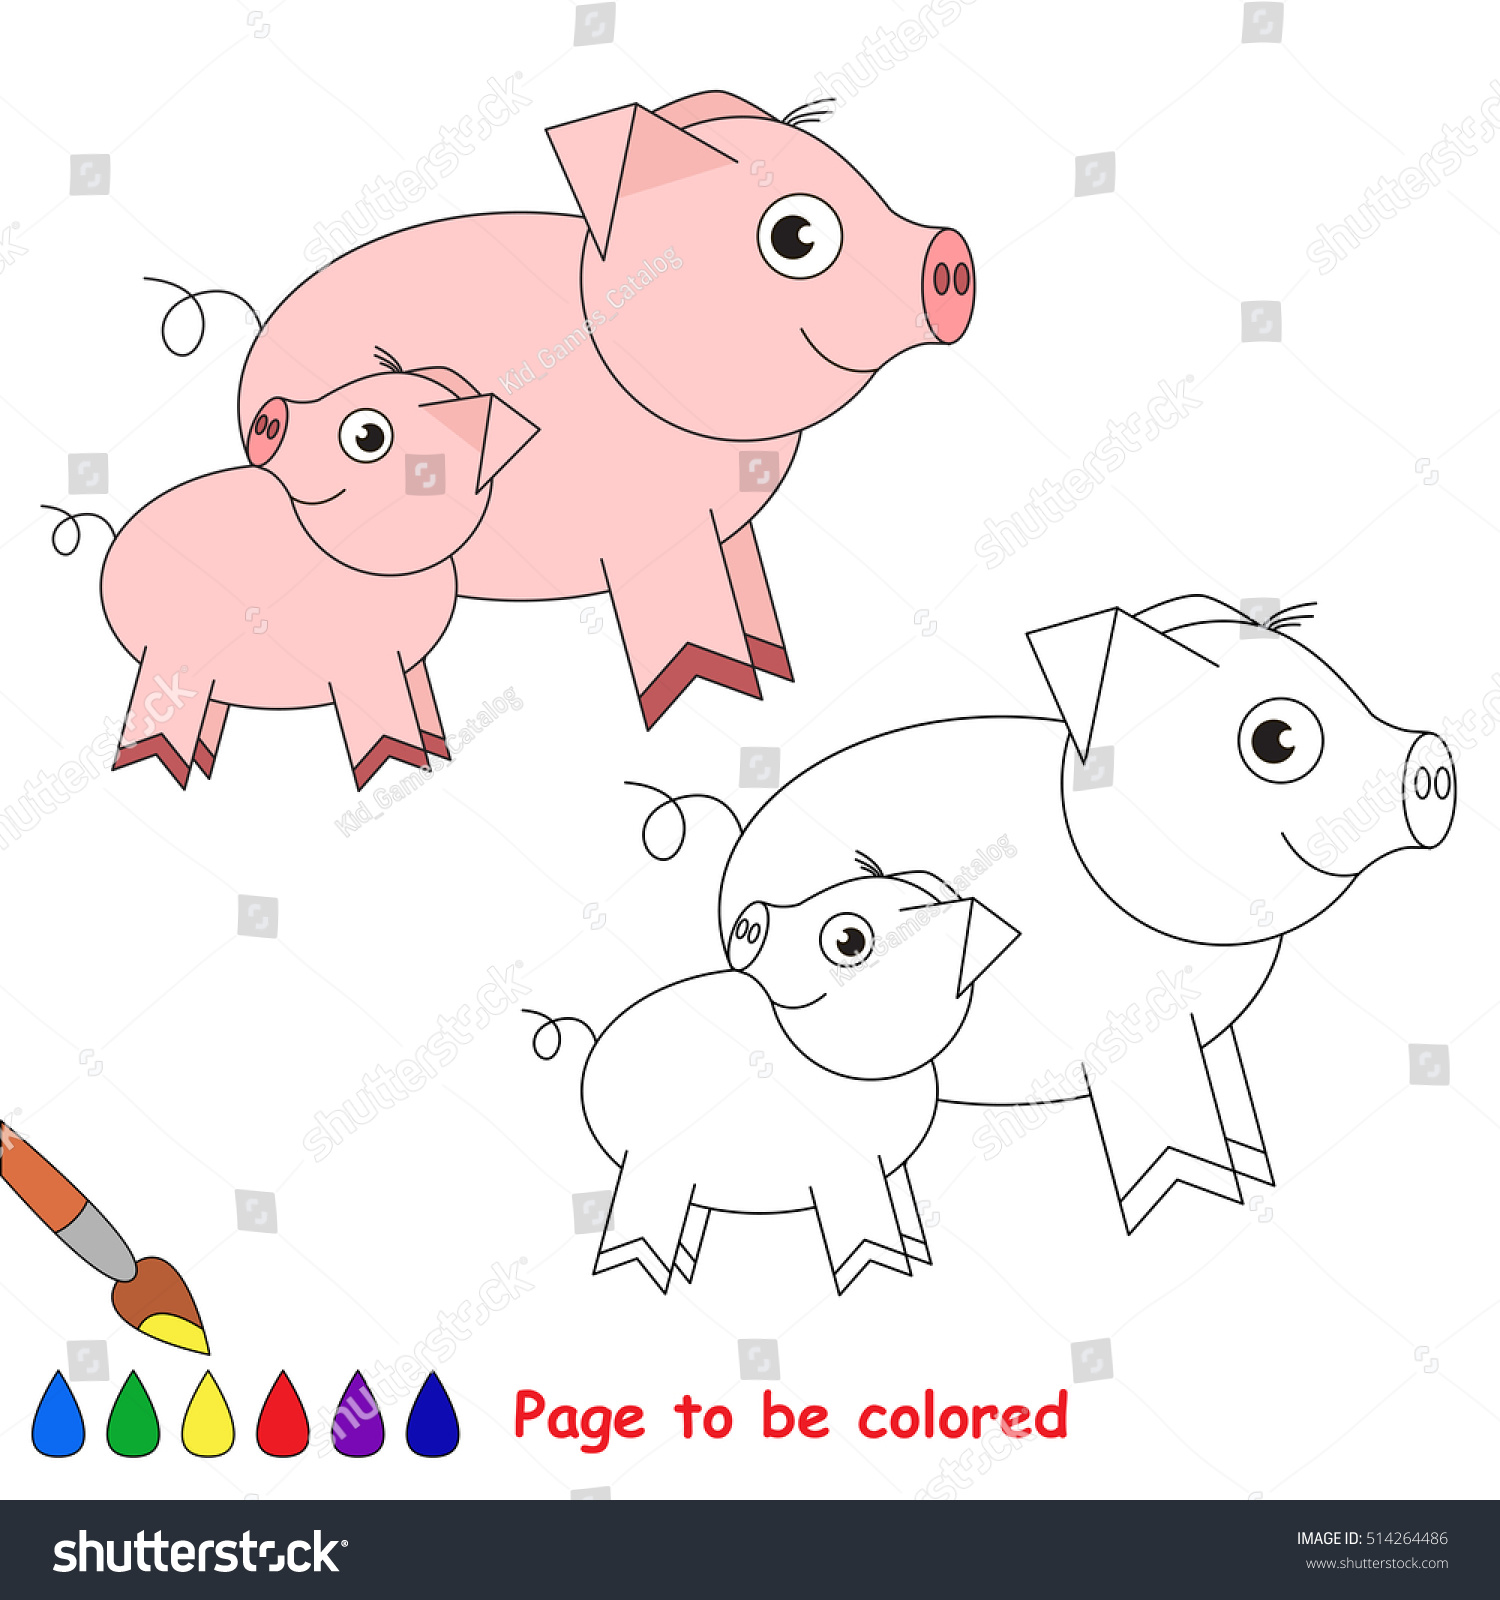 Pi Her Baby Be Colored Coloring Stock Vector (Royalty Free ...